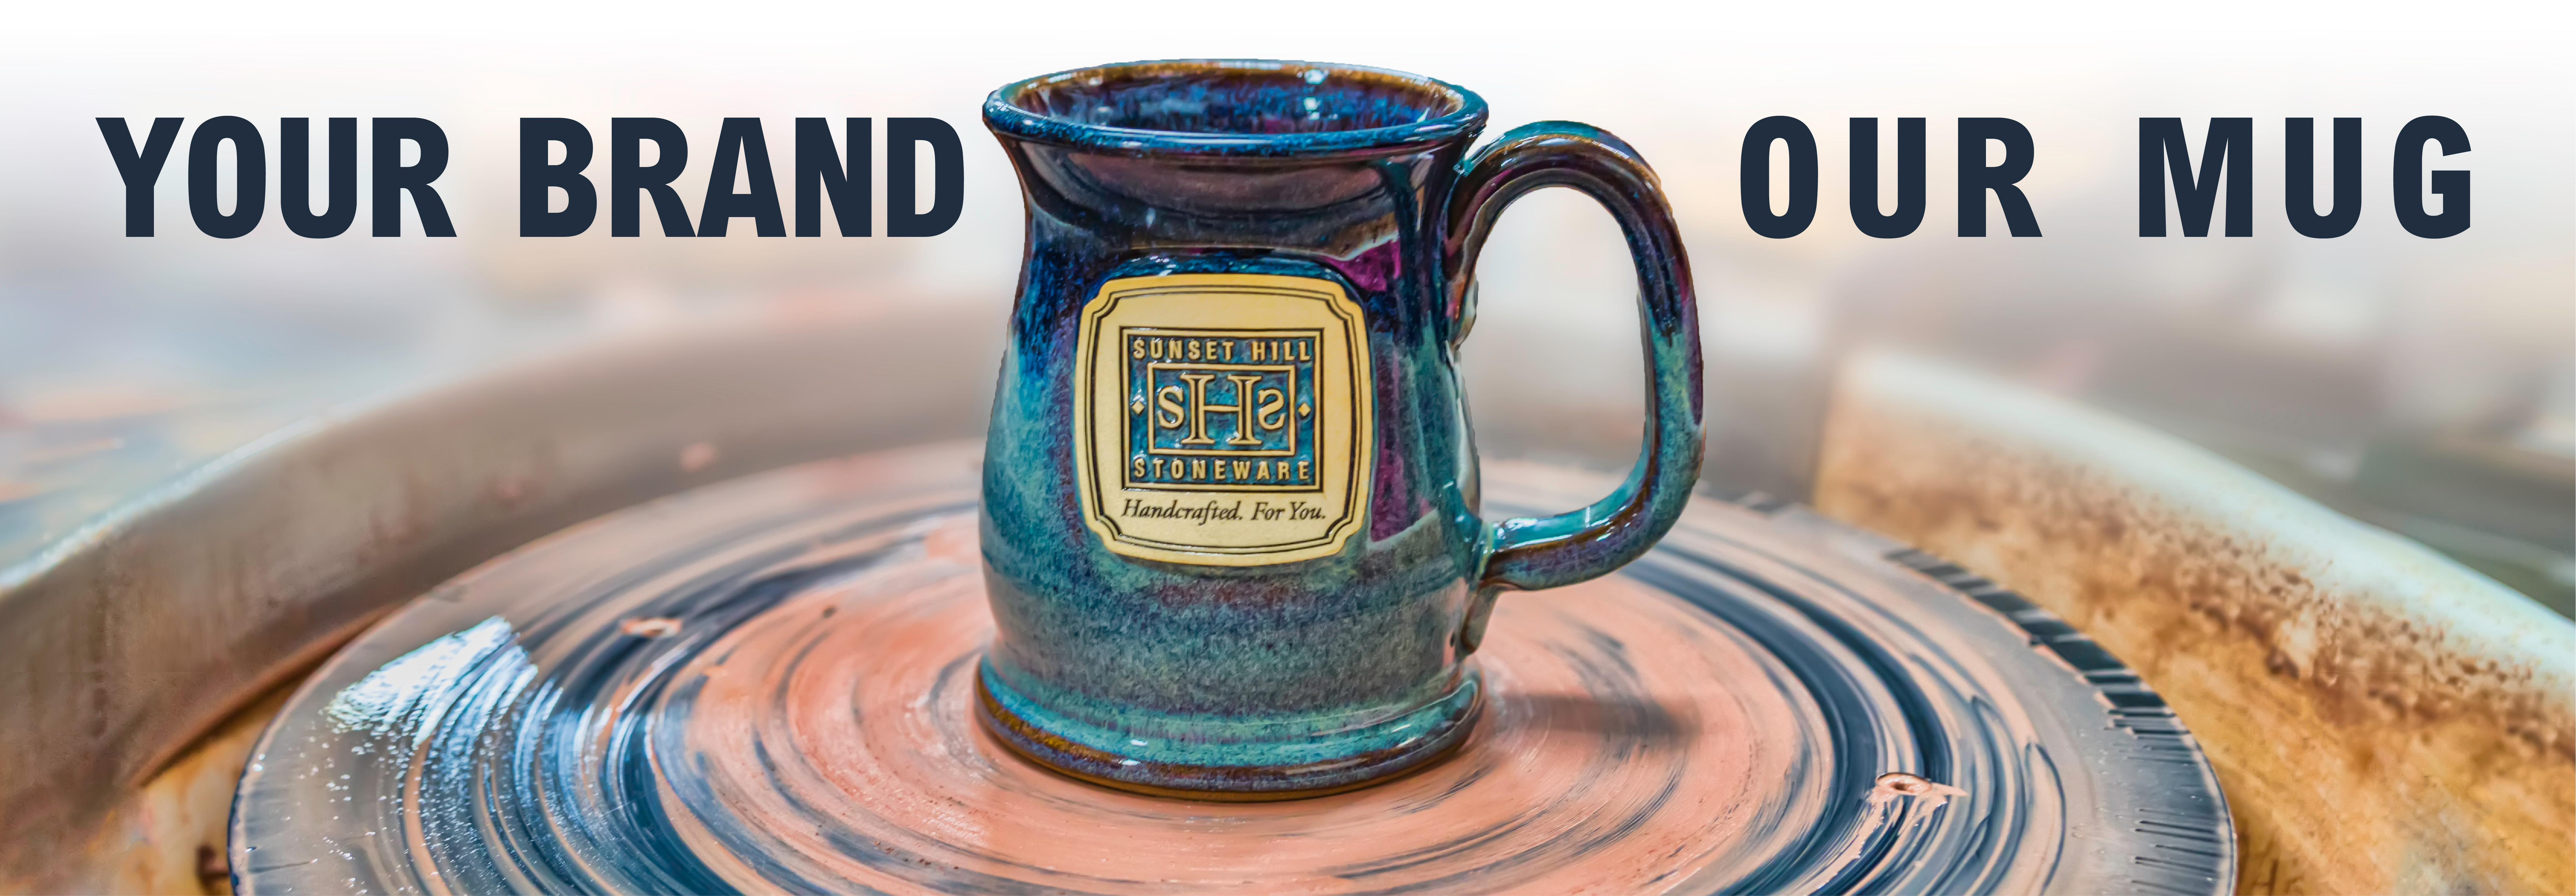 Sunset Hill Stoneware. Your brand, our mug for promotional products.